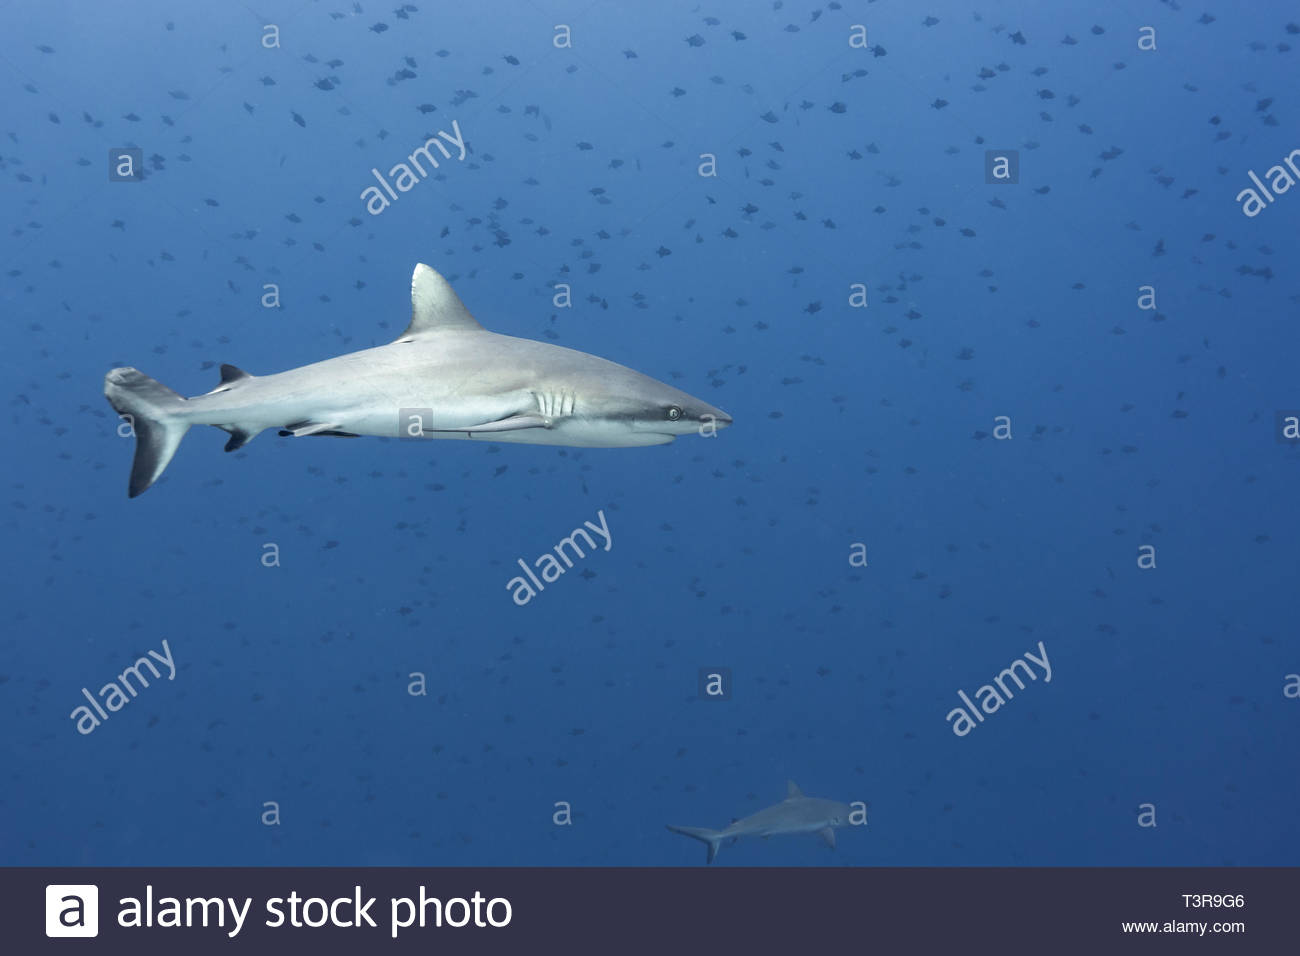 Silvertip reef shark with injuries and scars on tail fin - Stock Image